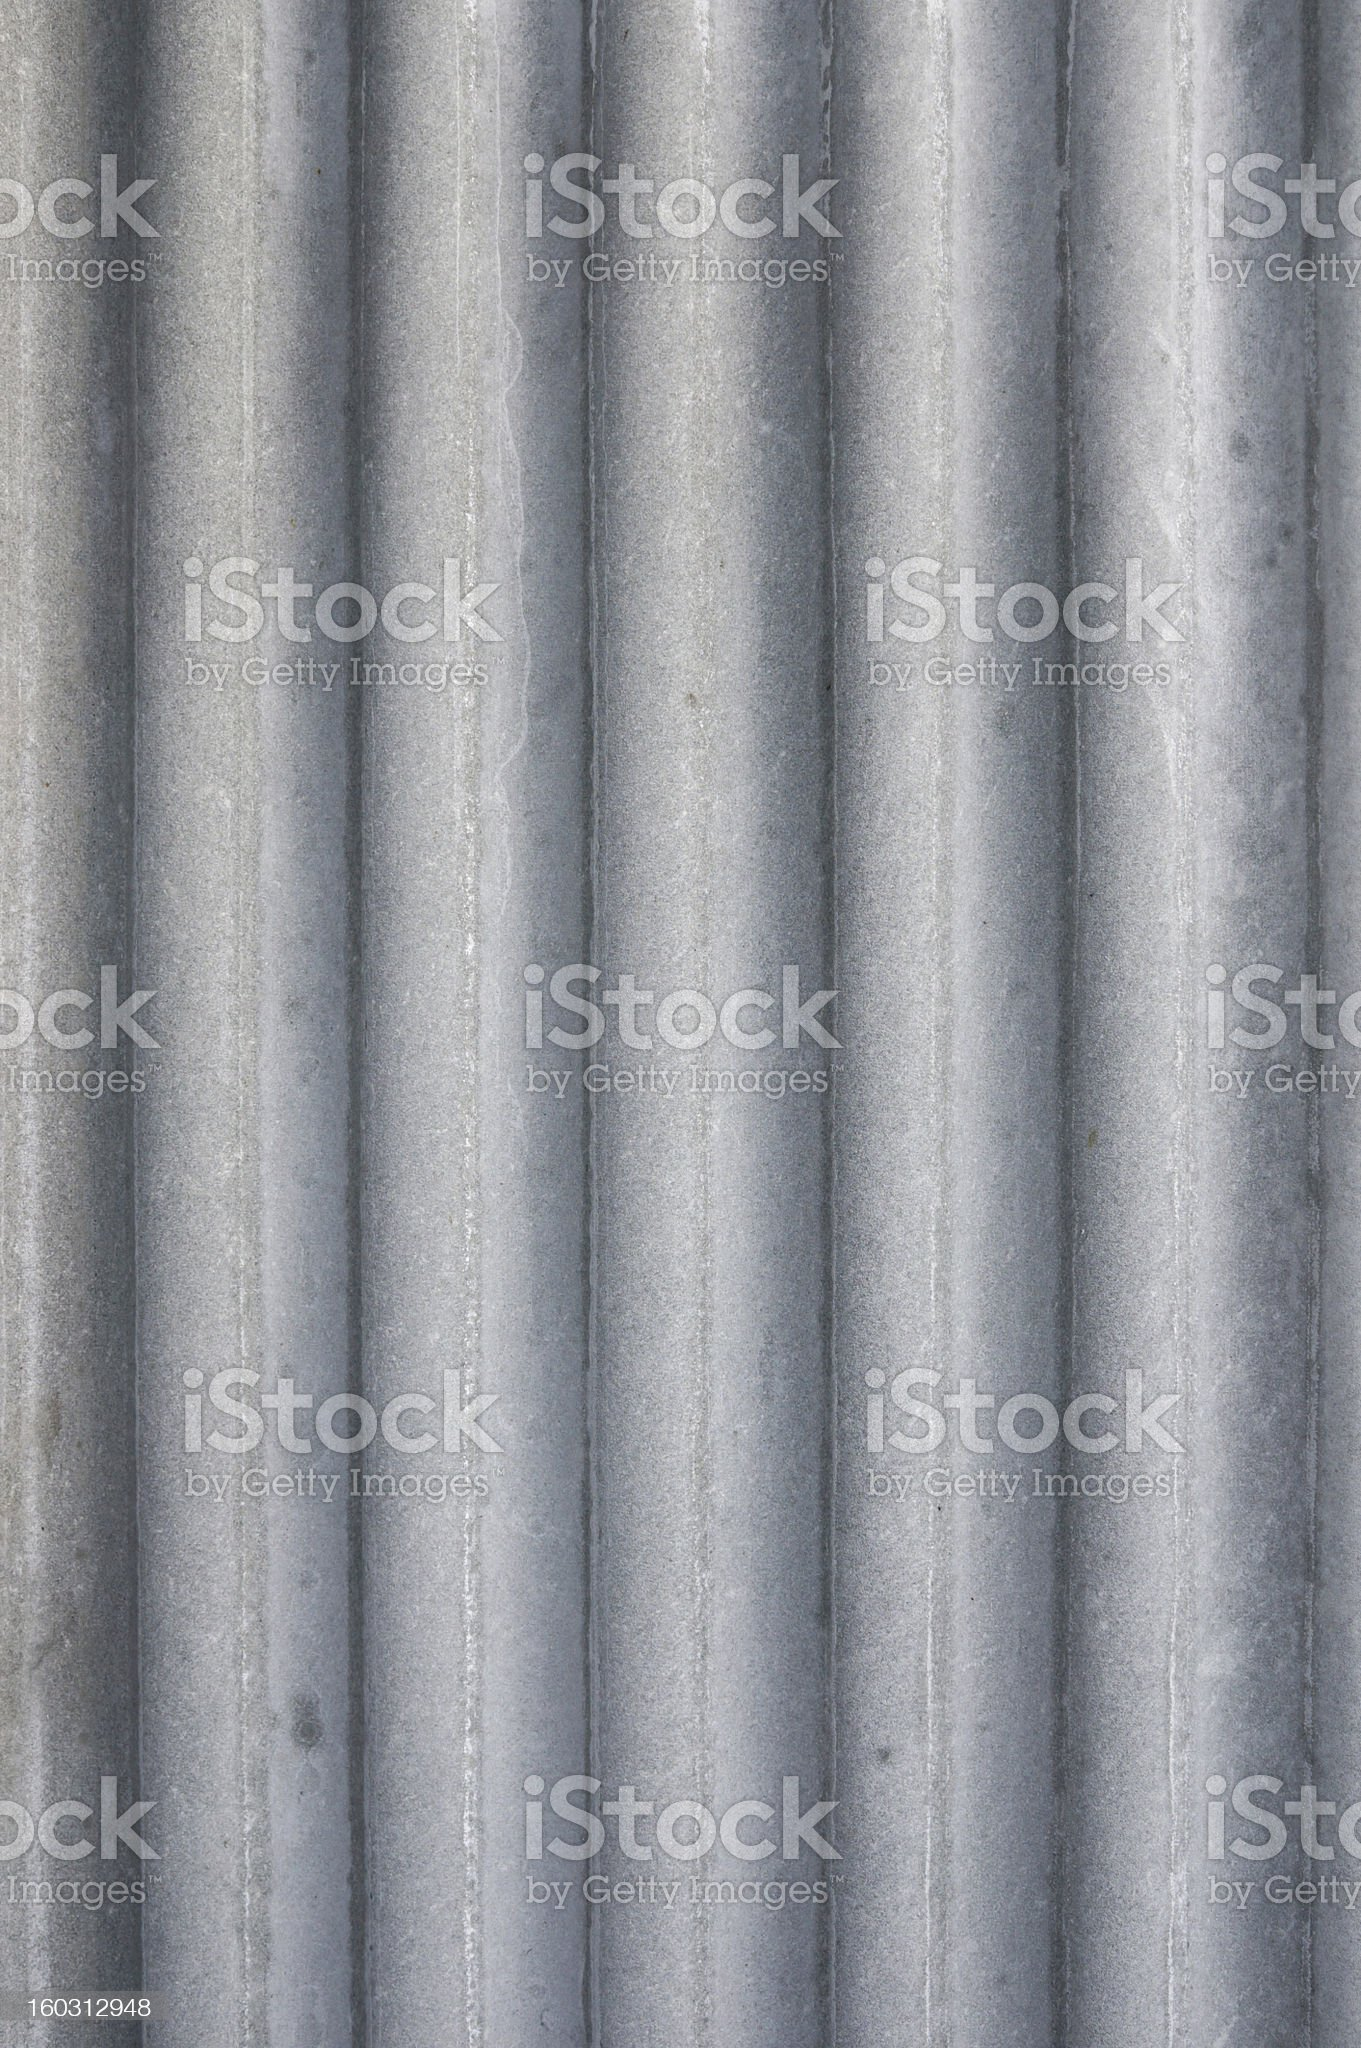 Vertical gray corrugated roof tile royalty-free stock photo